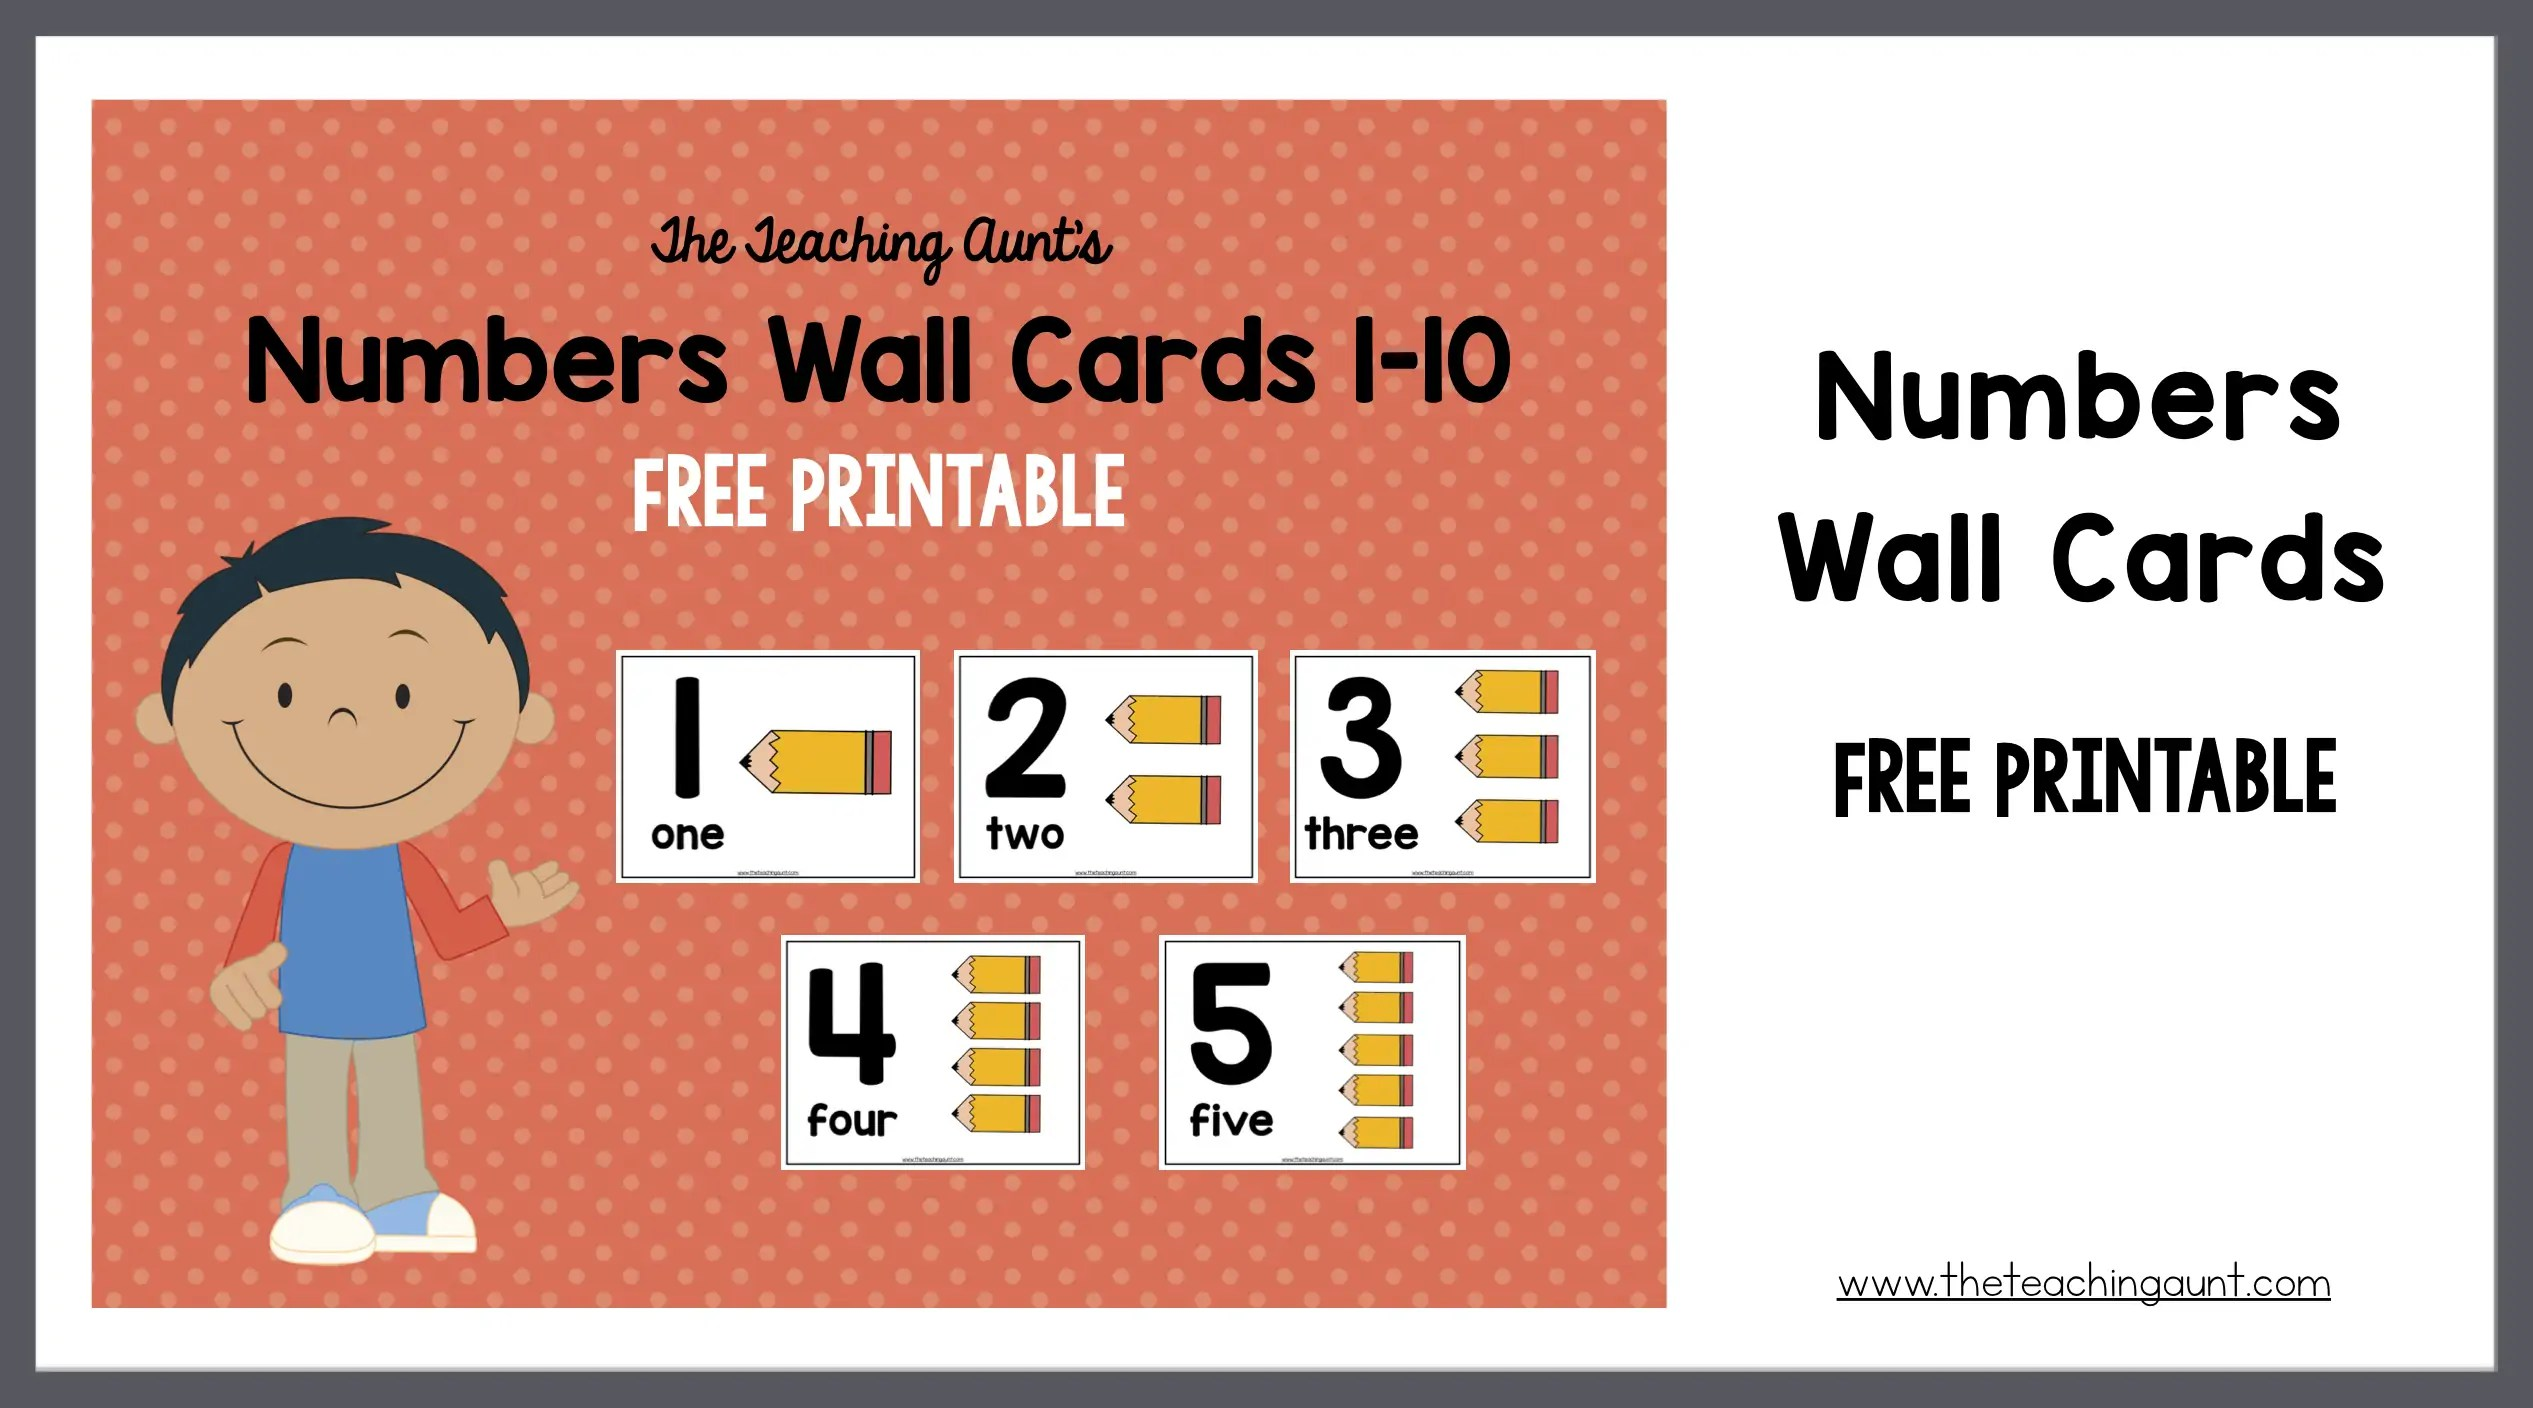 graphic about Printable Numbers 1-10 identify Variety Wall Playing cards for Preschoolers - The Education Aunt